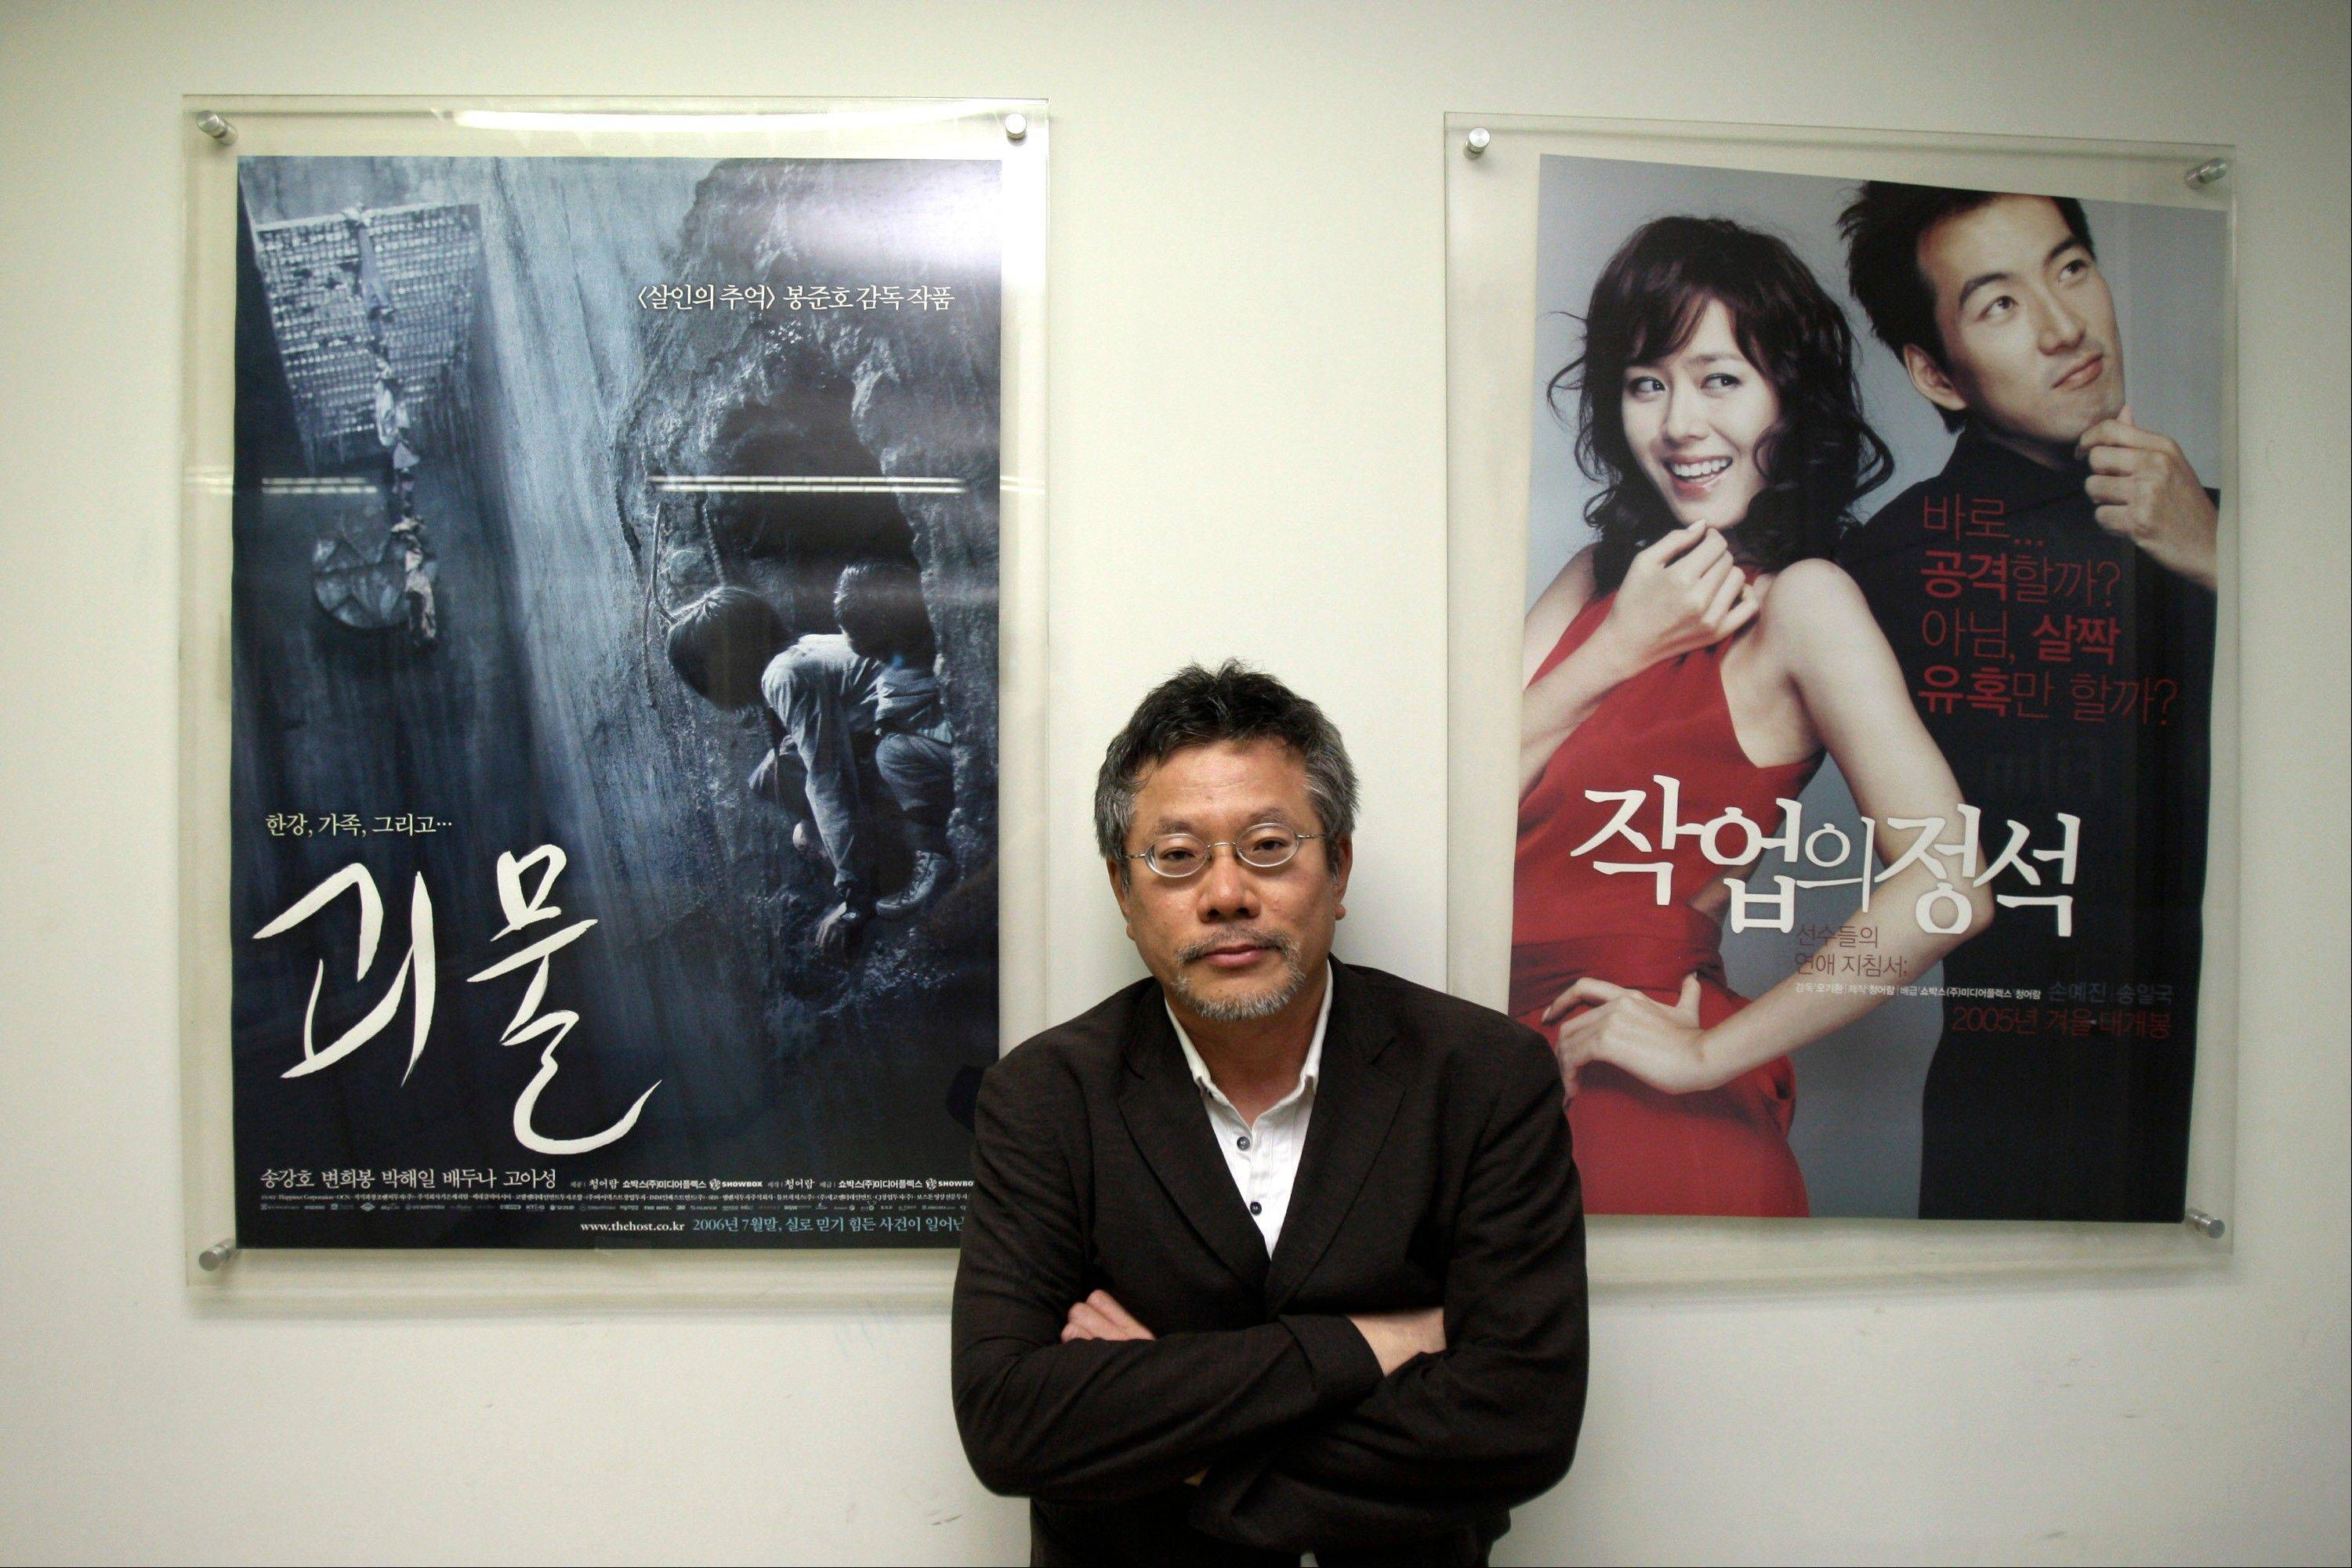 Choi Yong-bae, Chungeoraham Film CEO and Producer, poses with posters produced by his company during an interview with The Associated Press at his office in Seoul, South Korea. After being turned down by many investors over the last four years, Choi said it feels strange and exciting that his revenge film about a notorious South Korean president blamed for the massacre of democracy protesters is finally coming to life through online donations.